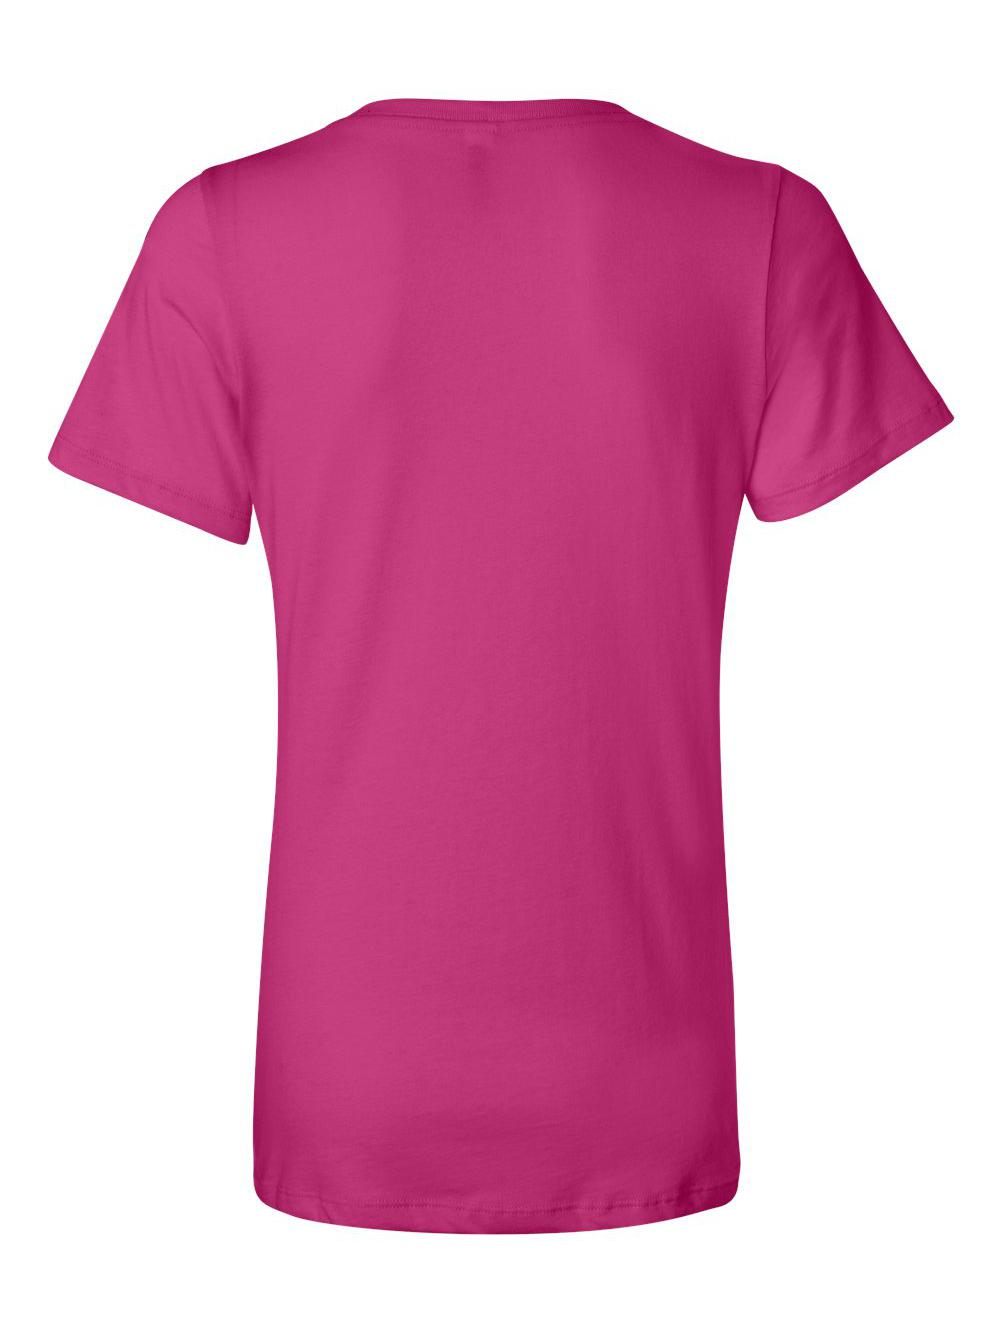 Bella-Canvas-Women-039-s-Relaxed-Short-Sleeve-Jersey-V-Neck-Tee-6405 thumbnail 7